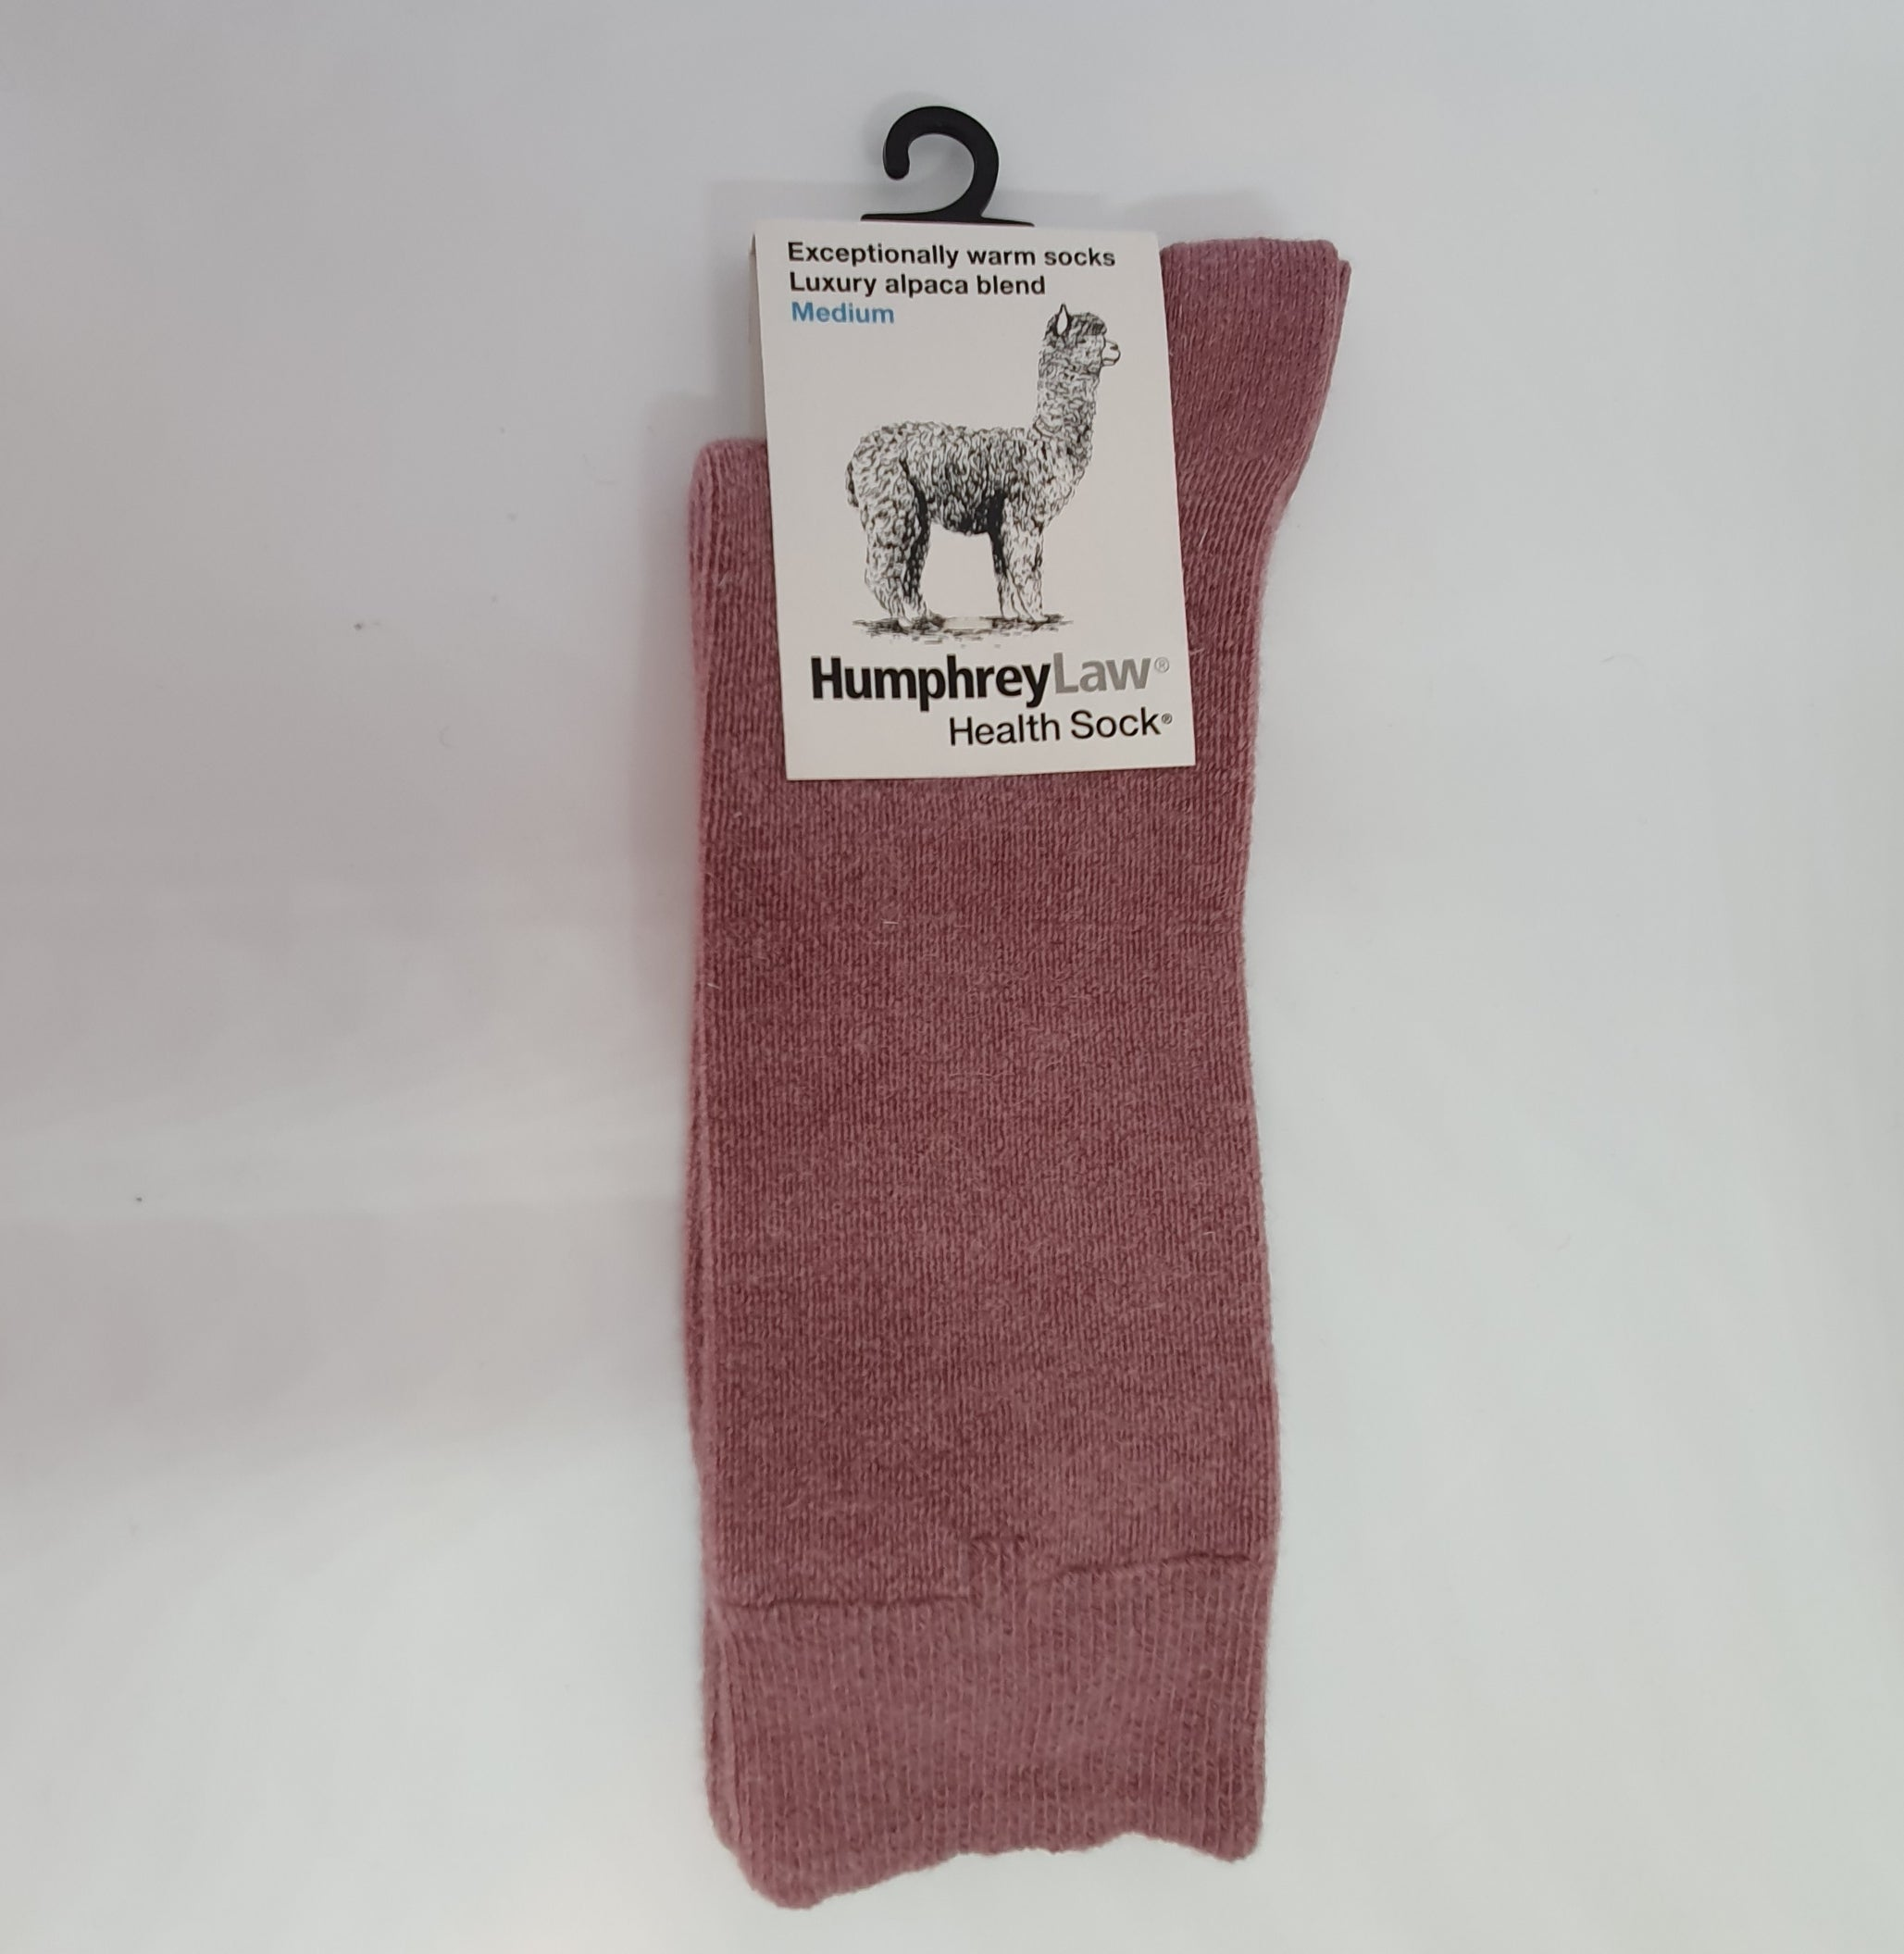 Alpaca Comfort Dress Socks (Humphrey Law)